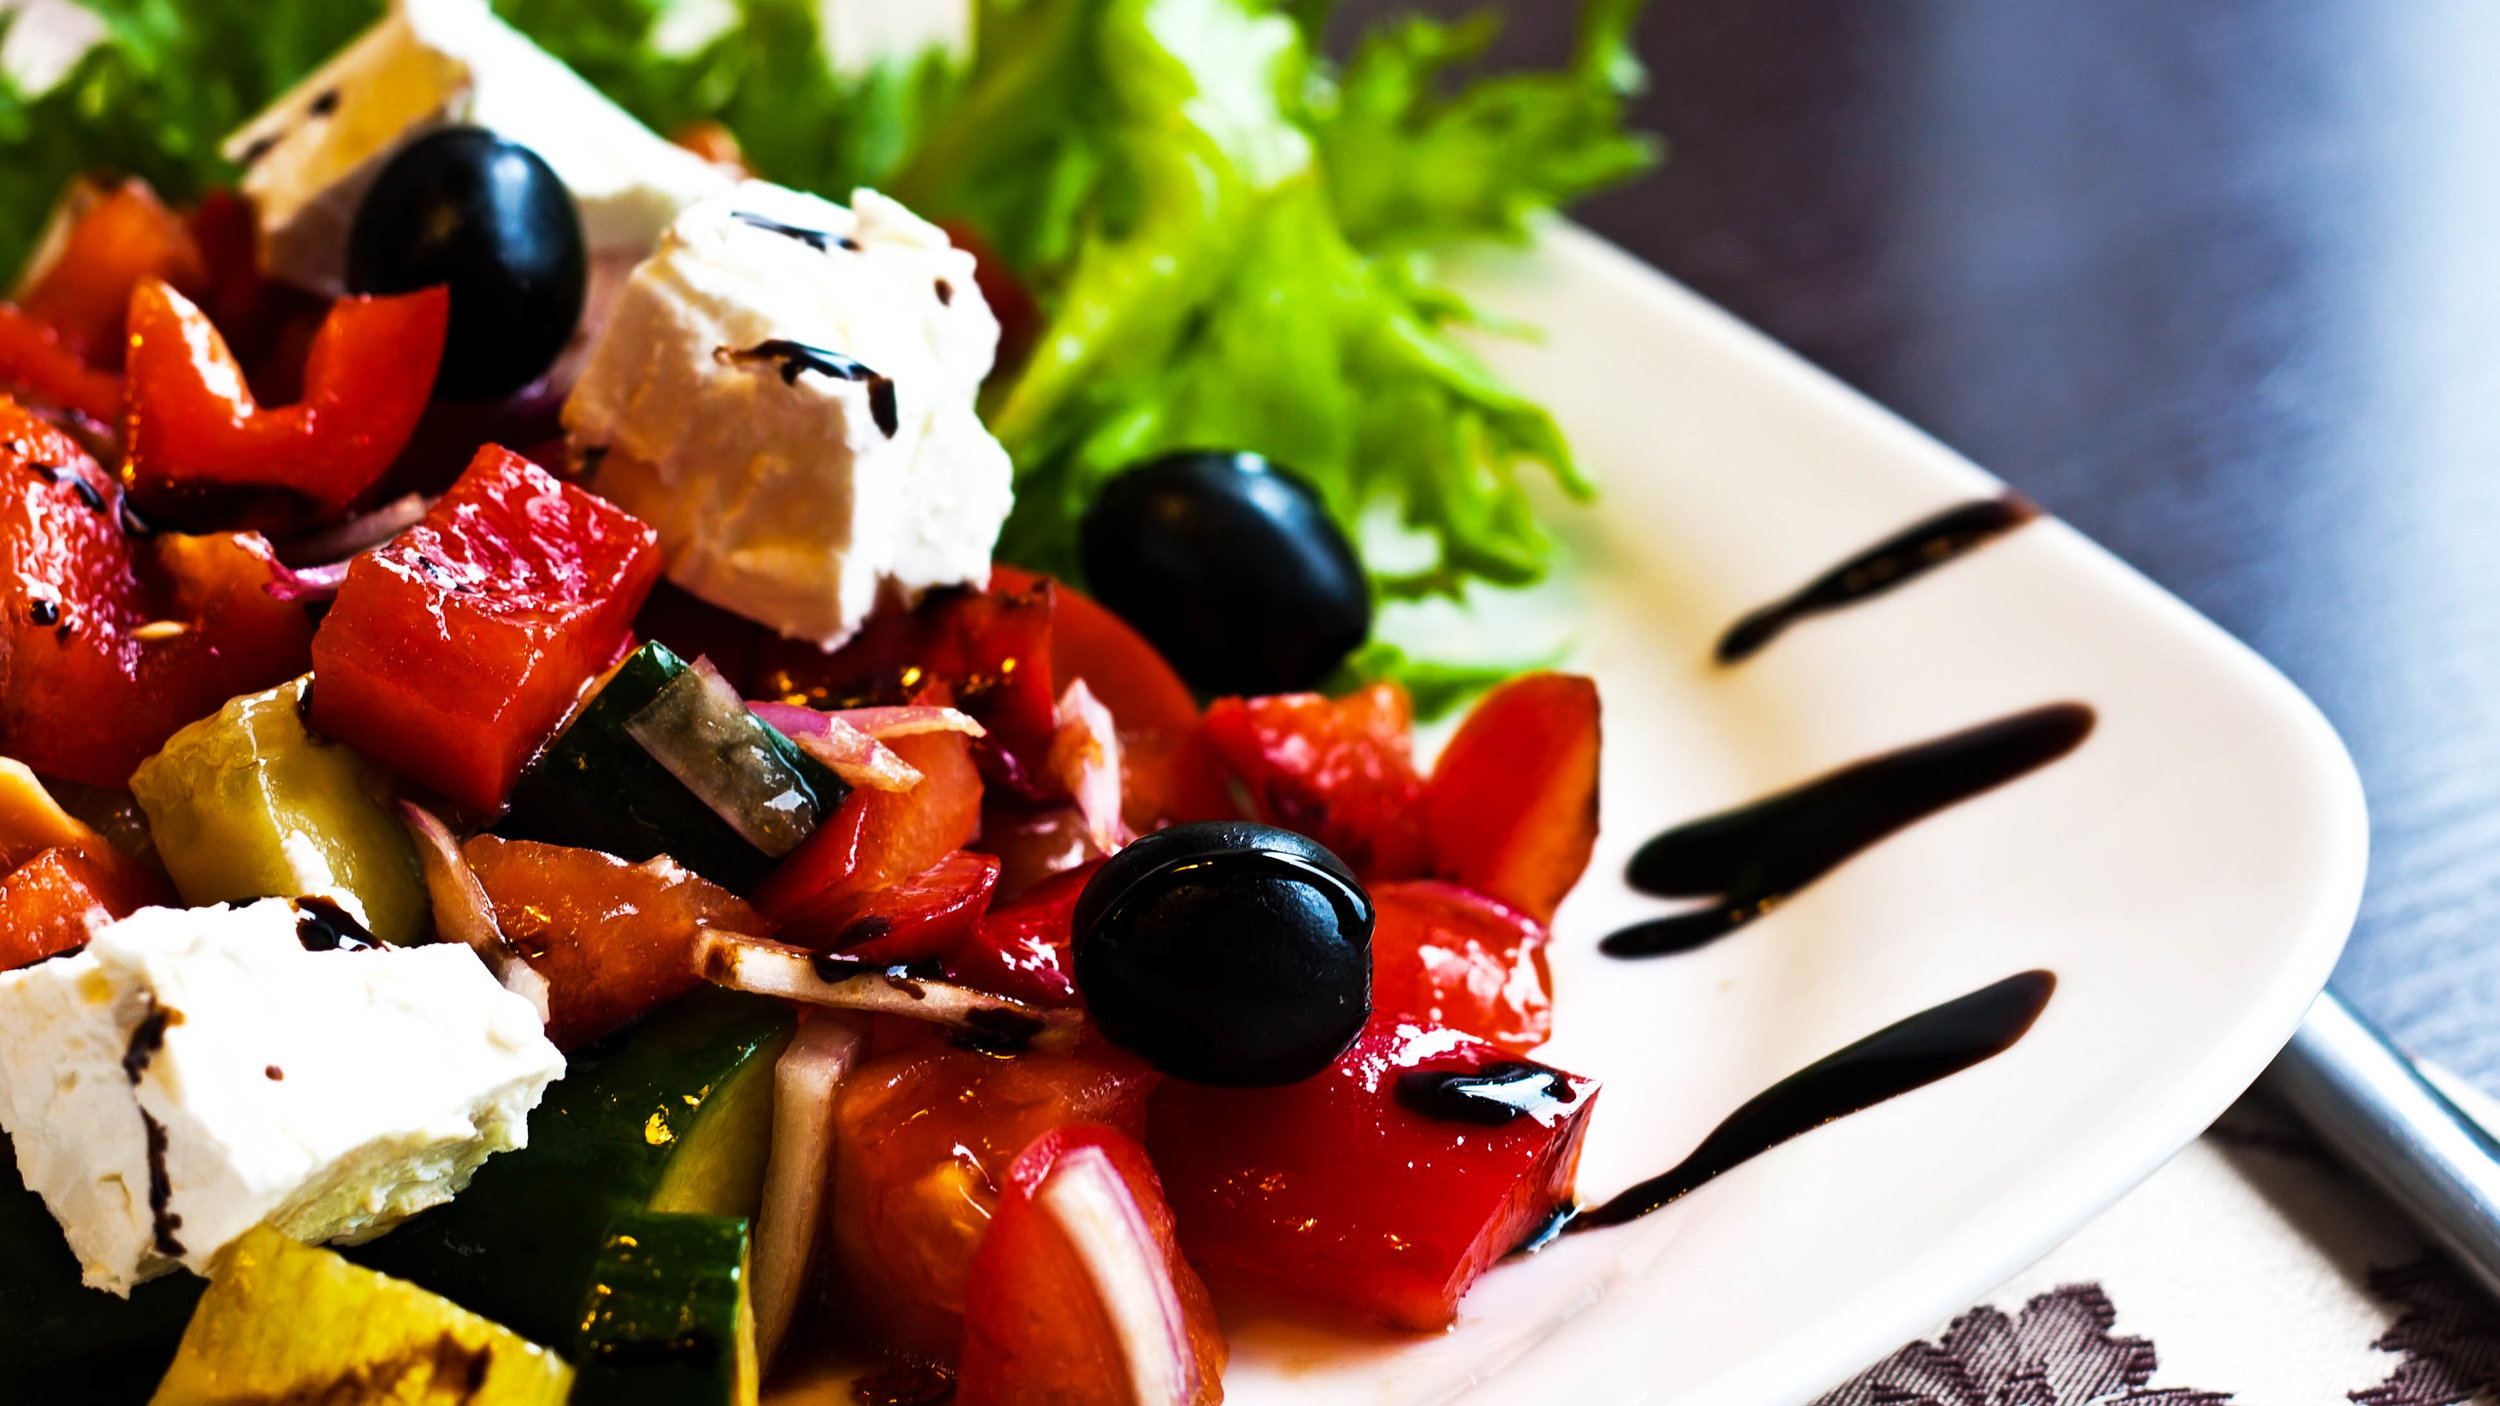 greek-salad-alr-c169-169.jpg